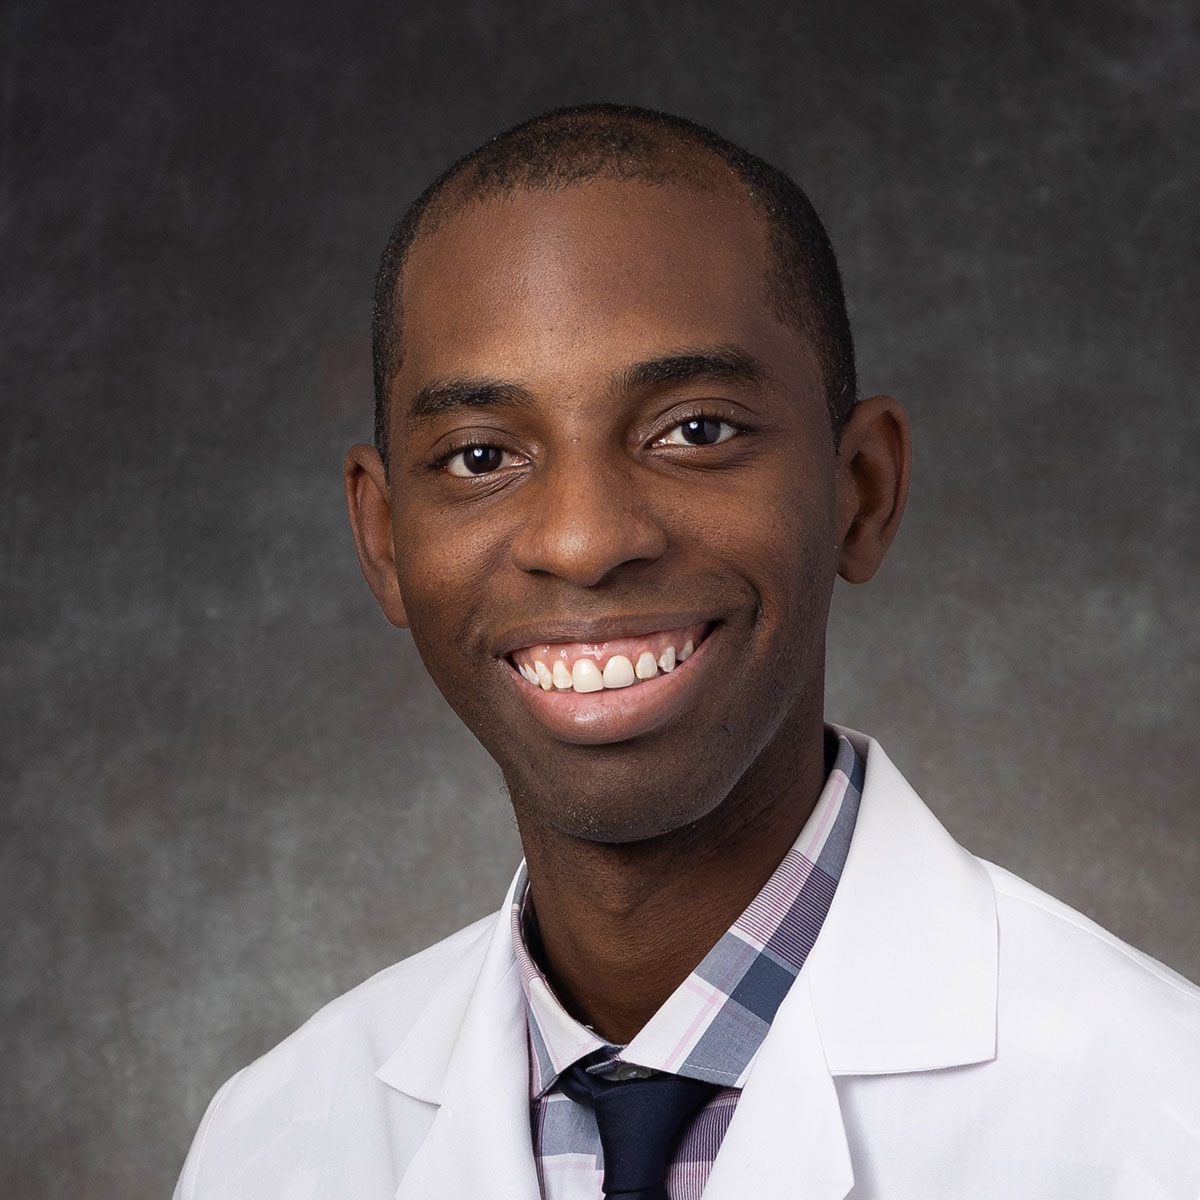 Kevin-Smith-MD